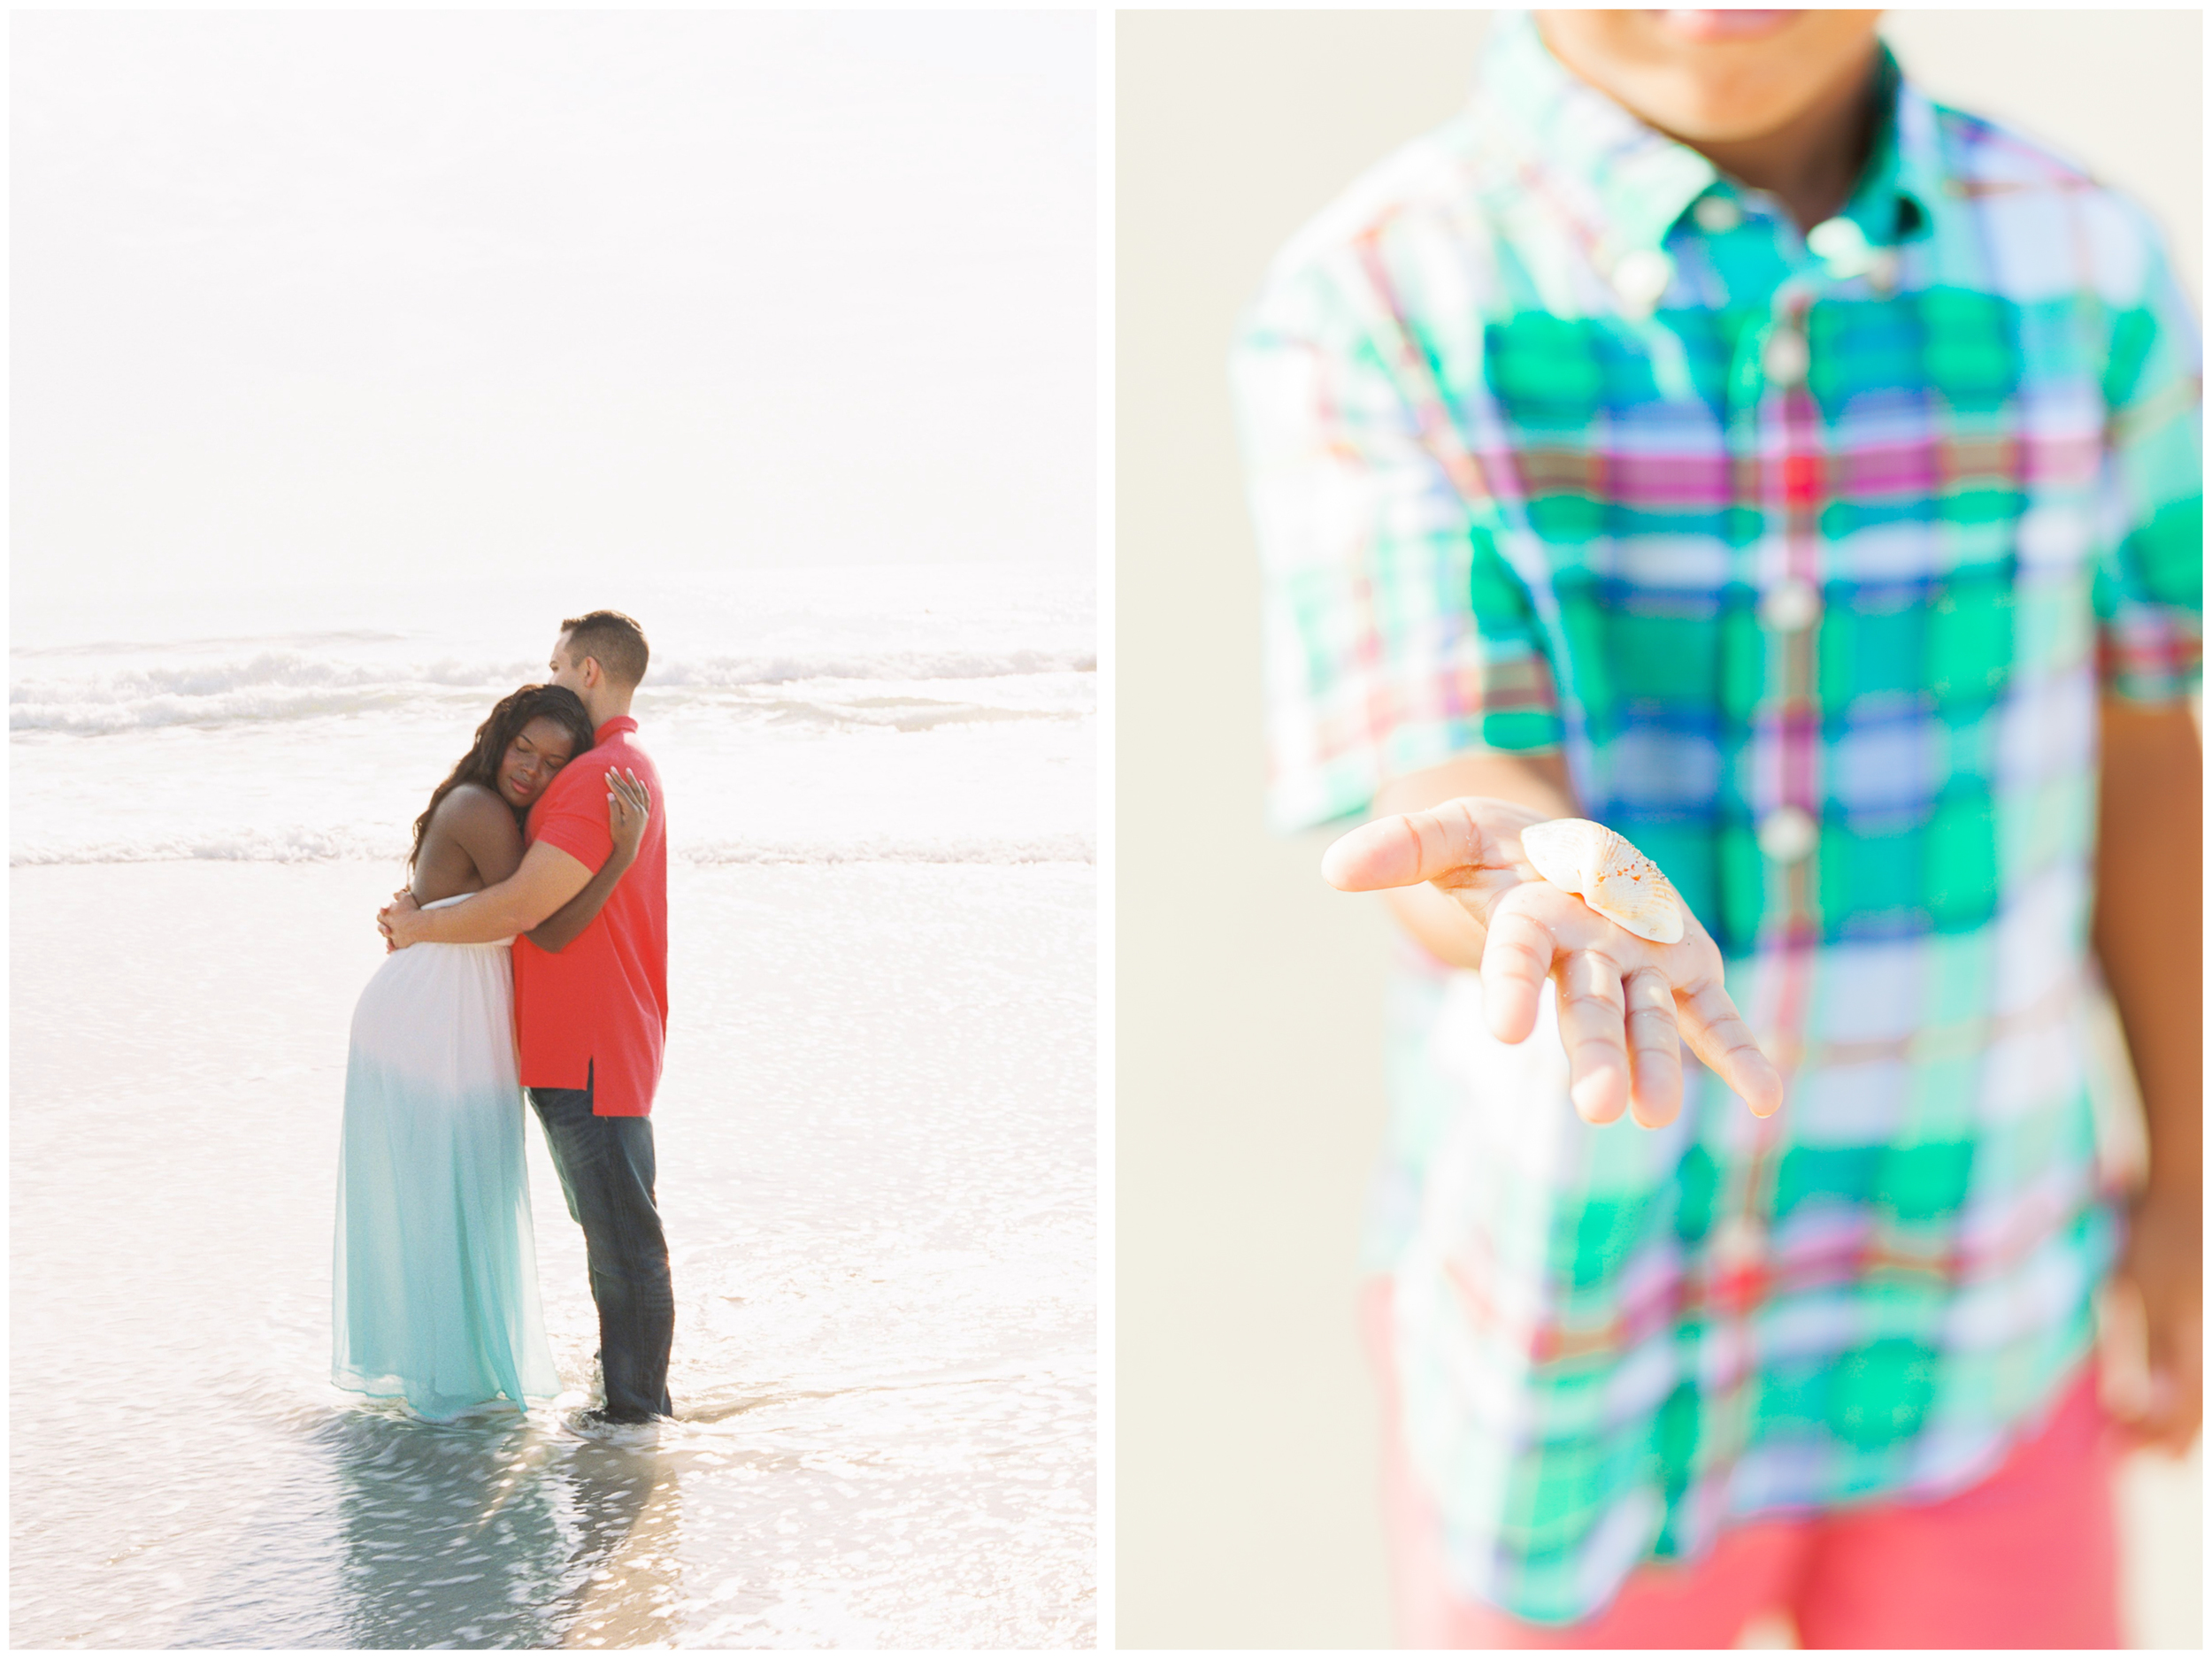 Tiara and Luis Engagement Session | Pelican Beach | Satellite Beach, Florida | Contax 645 Fuji400 | Michelle Mock Photography